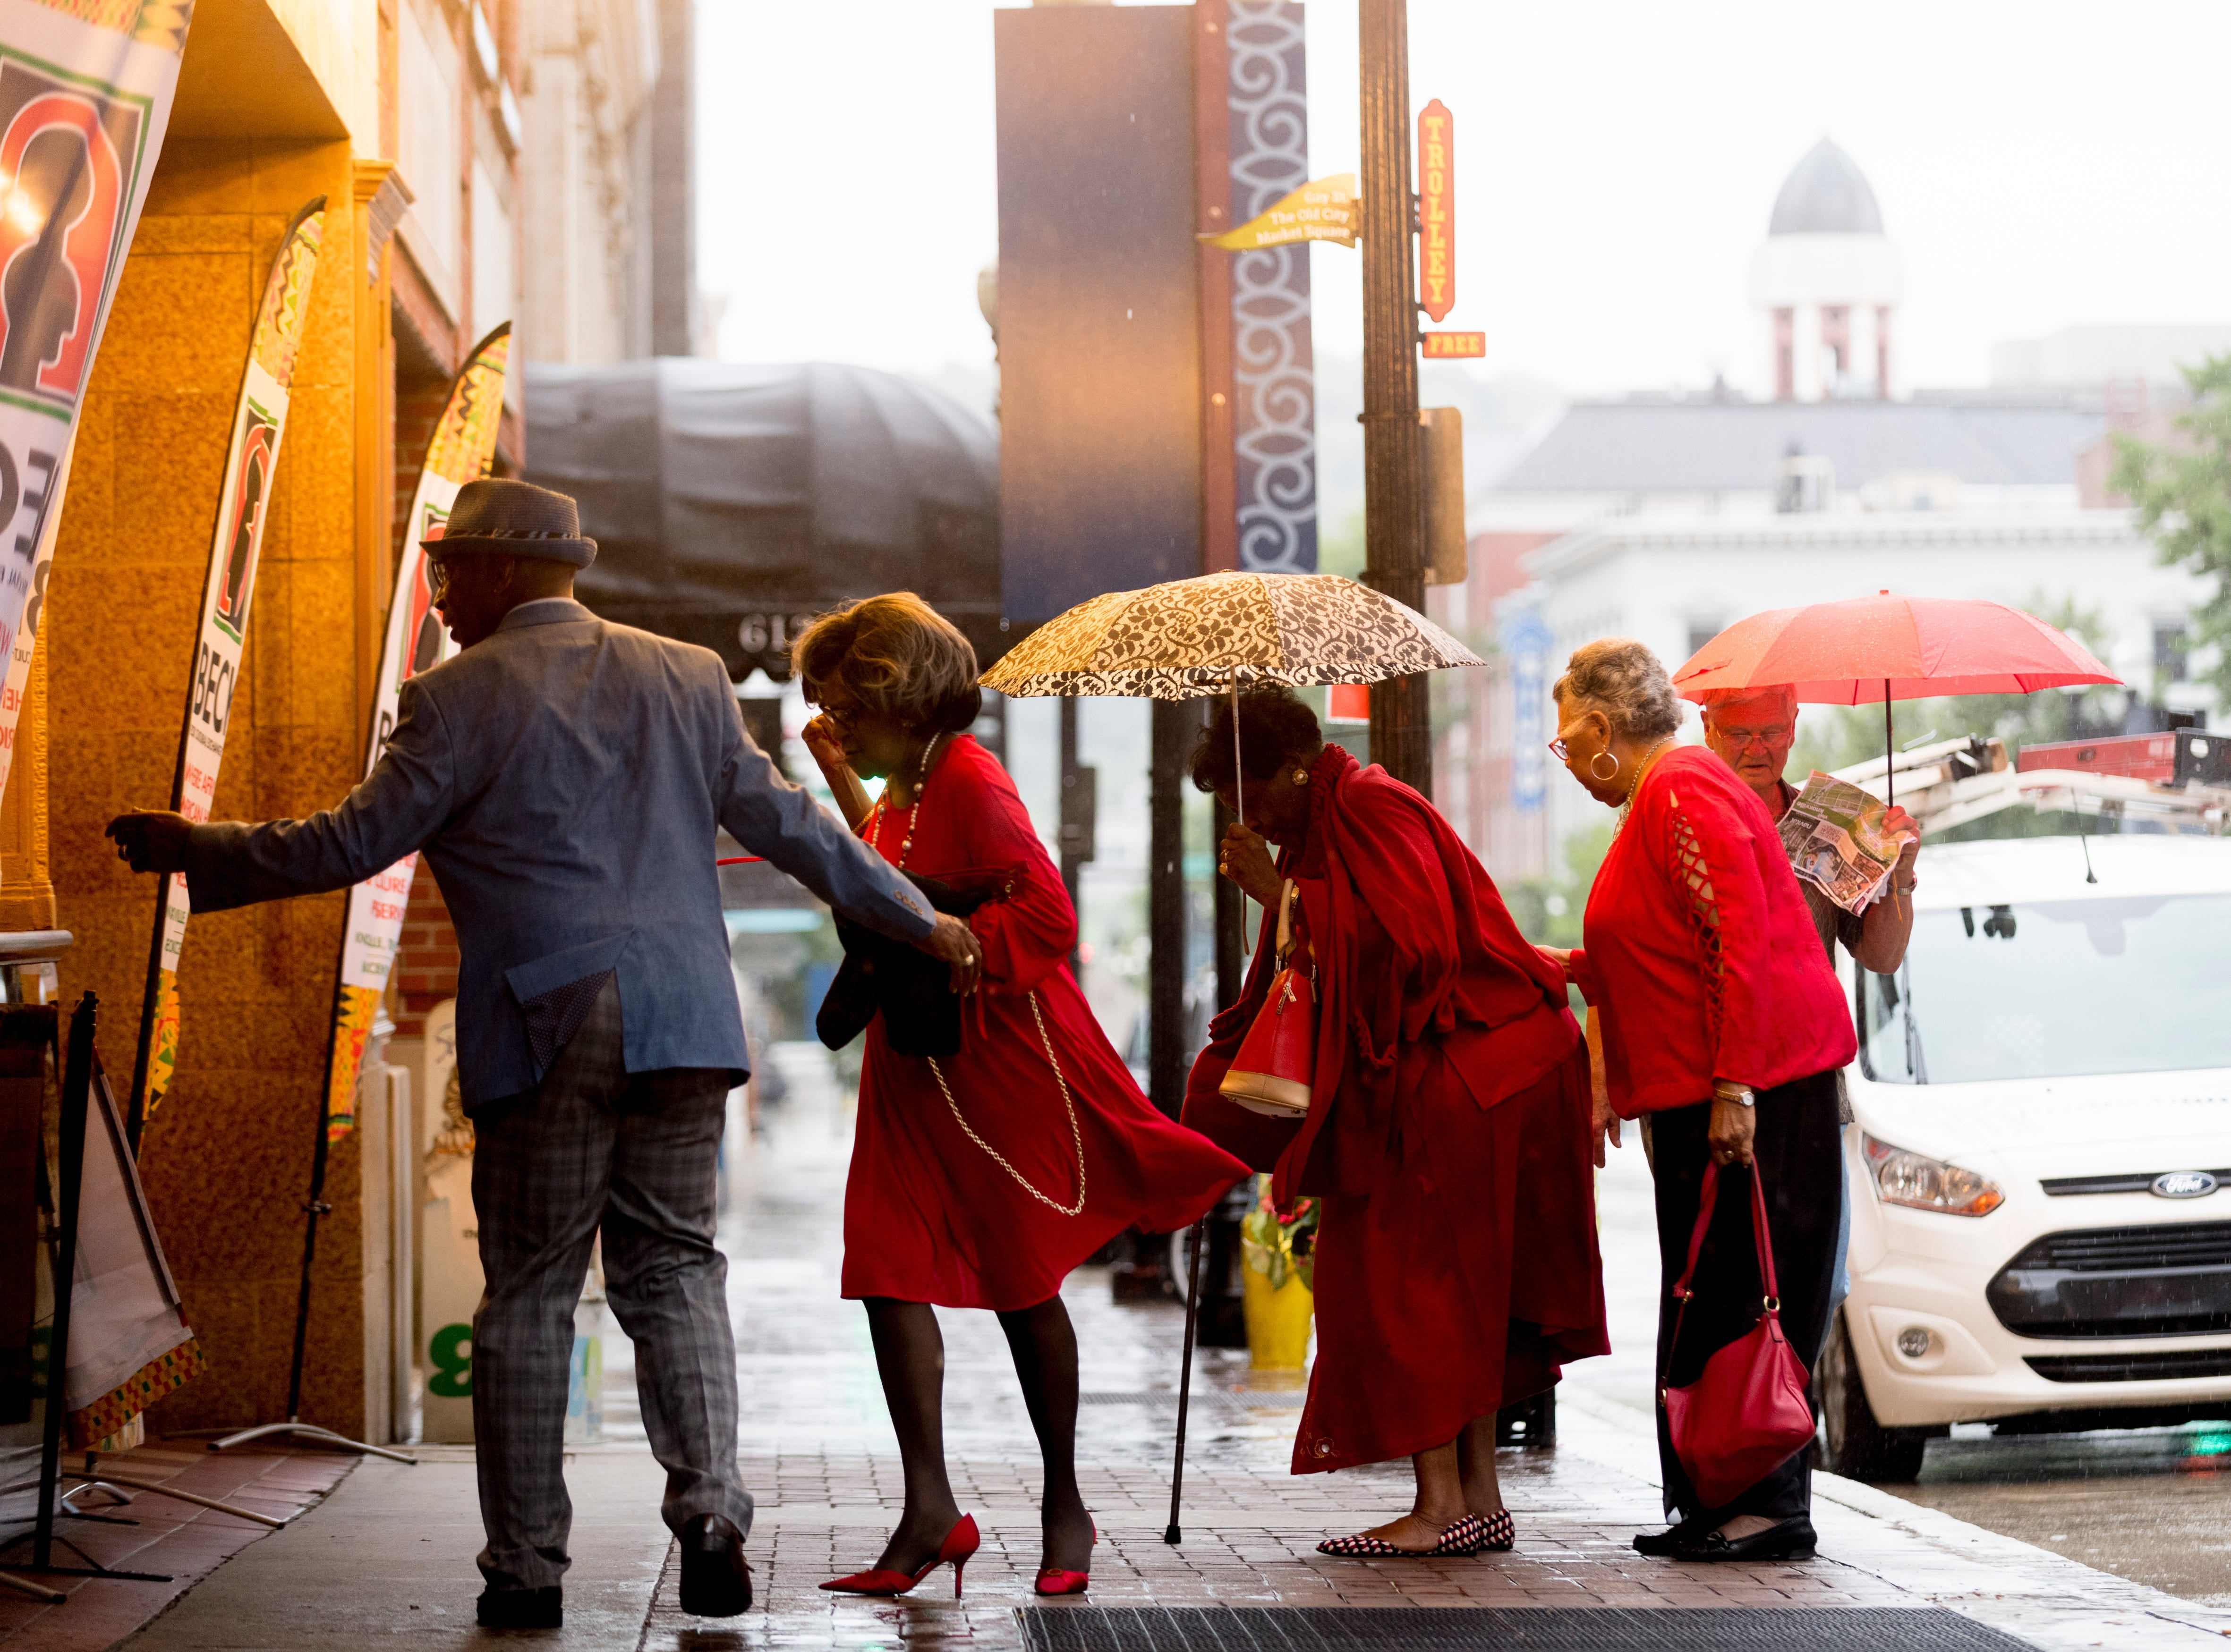 """Attendees arrive at the Beck Cultural Center's """"Eighth of August"""" commemoration at the Tennessee Theatre in Knoxville, Tennessee on Wednesday, August 8, 2018. Filmmaker Loki Mulholland and civil rights icon Joan Trumpauer Mulholland were special guests at the debut screening of Black, White & U.S."""